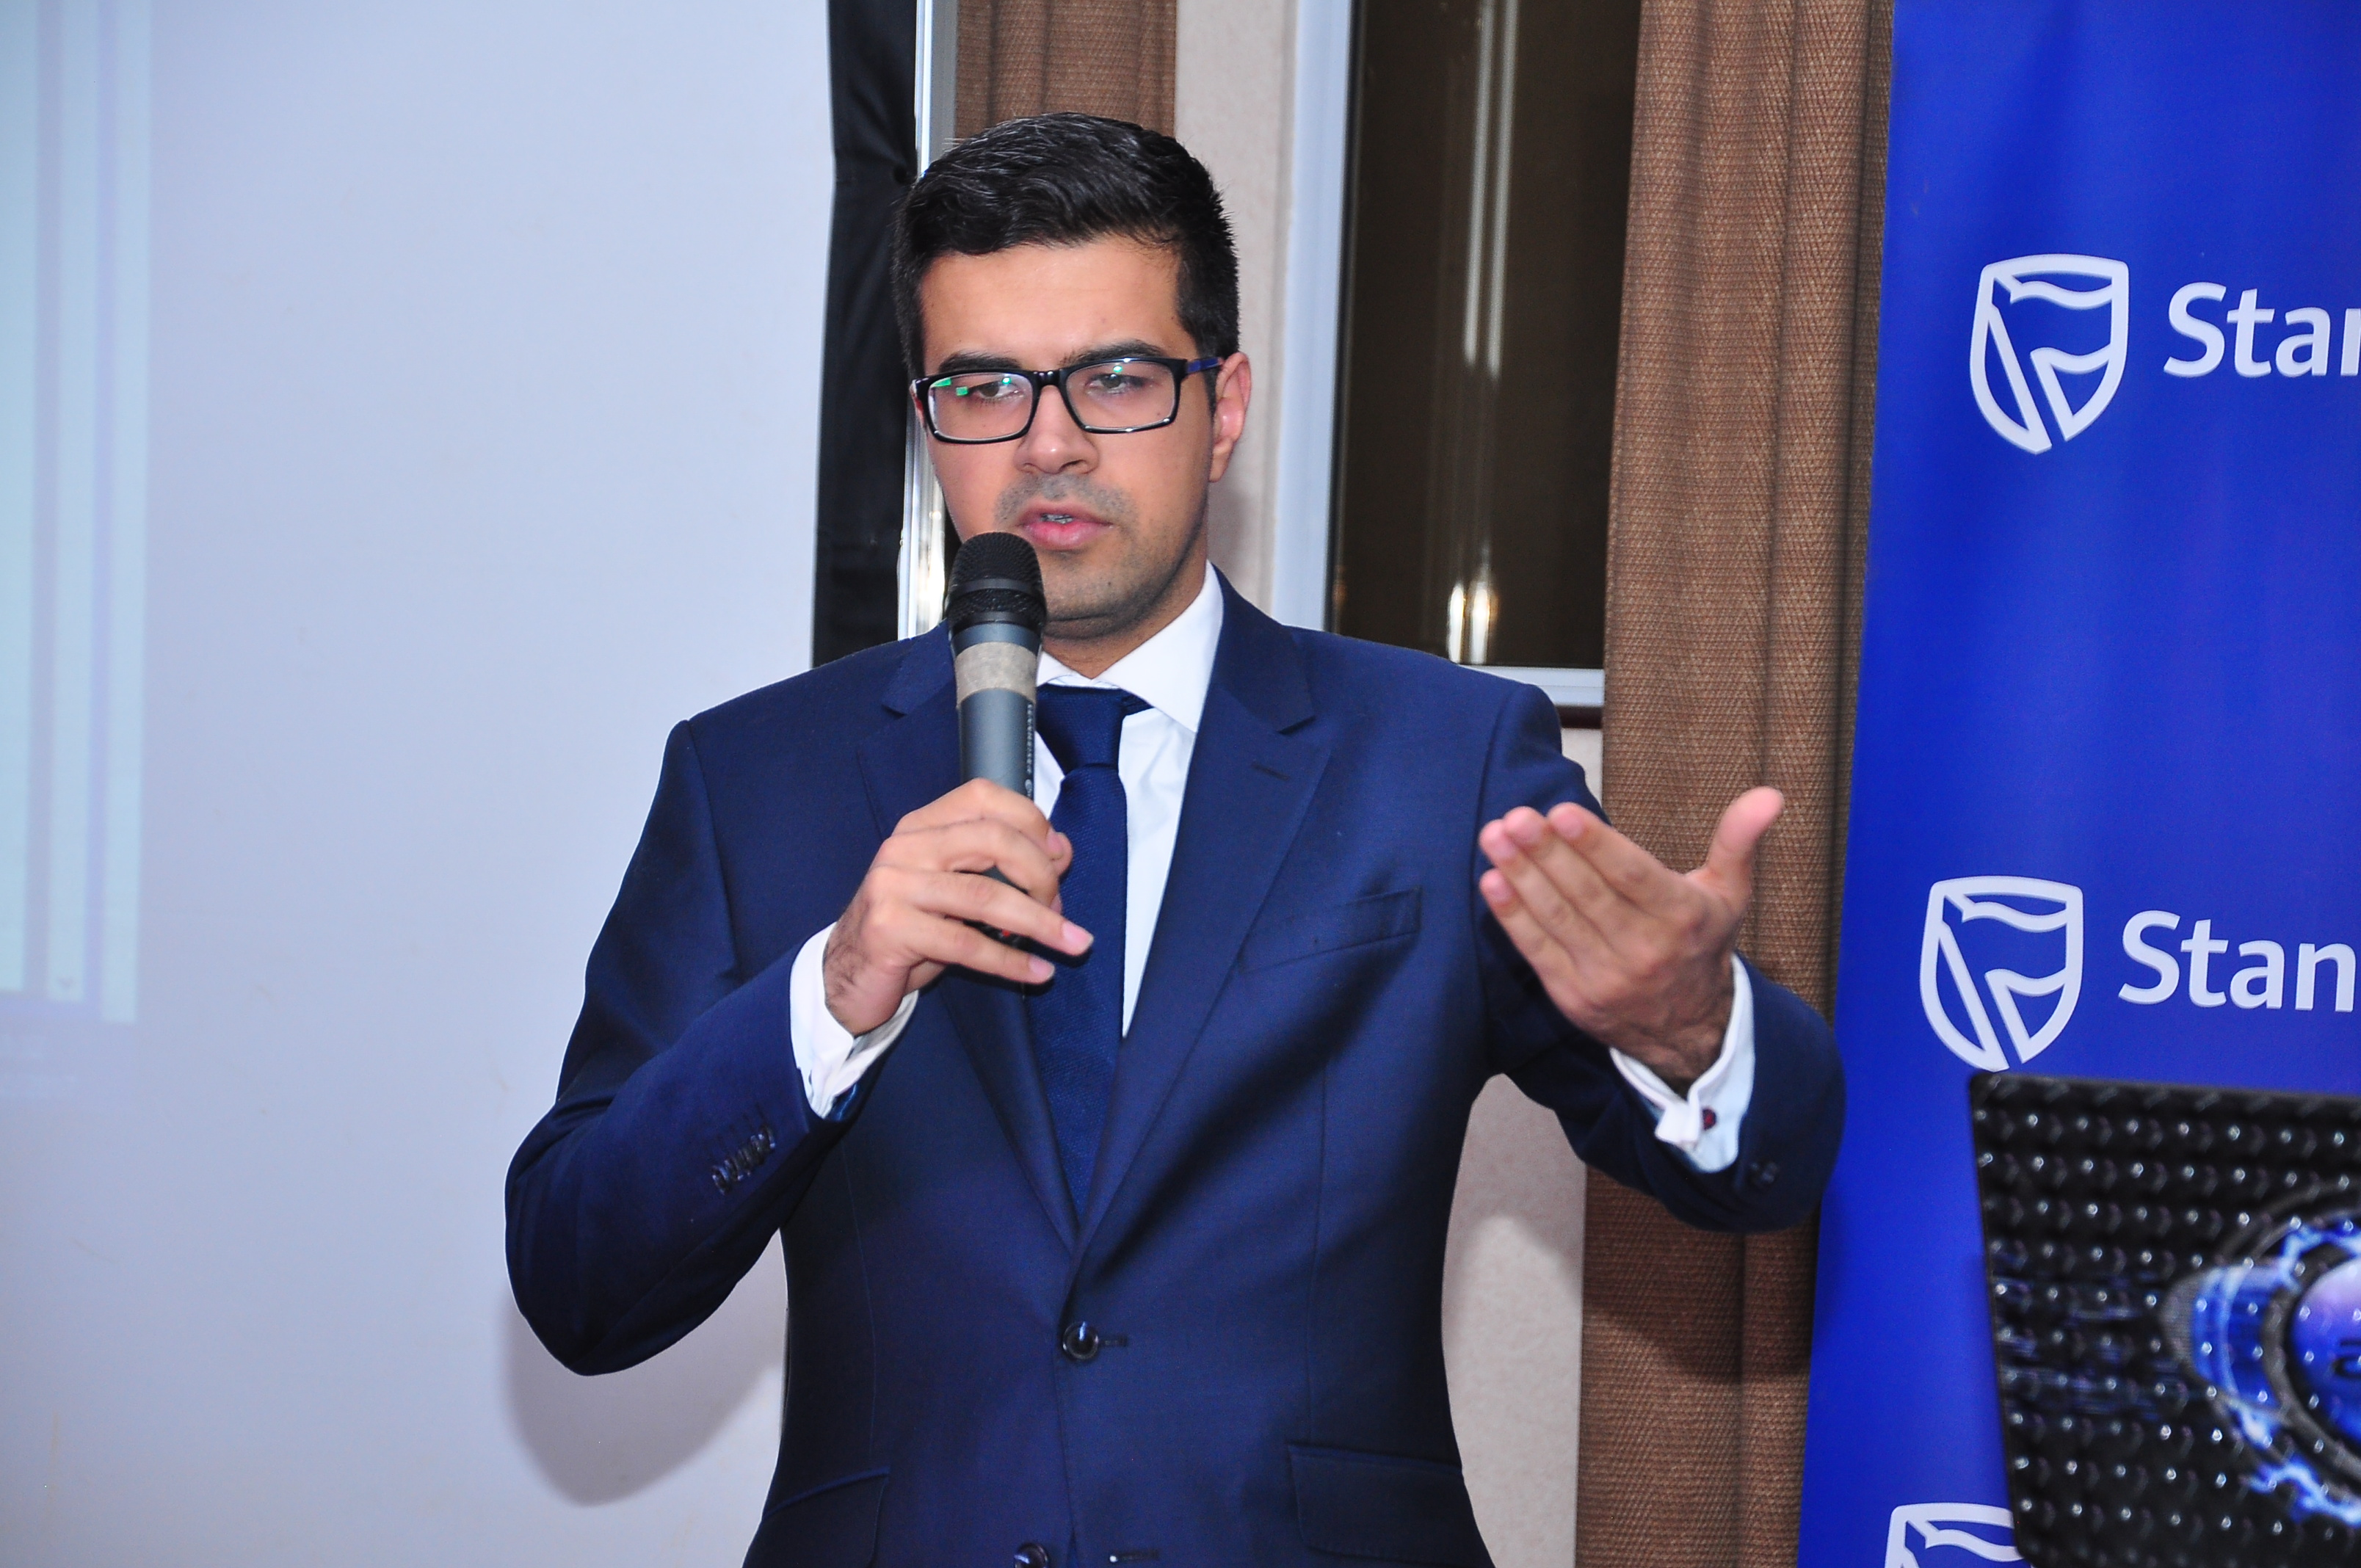 Jibran Qureishi, head of Africa Research at Stanbic Bank